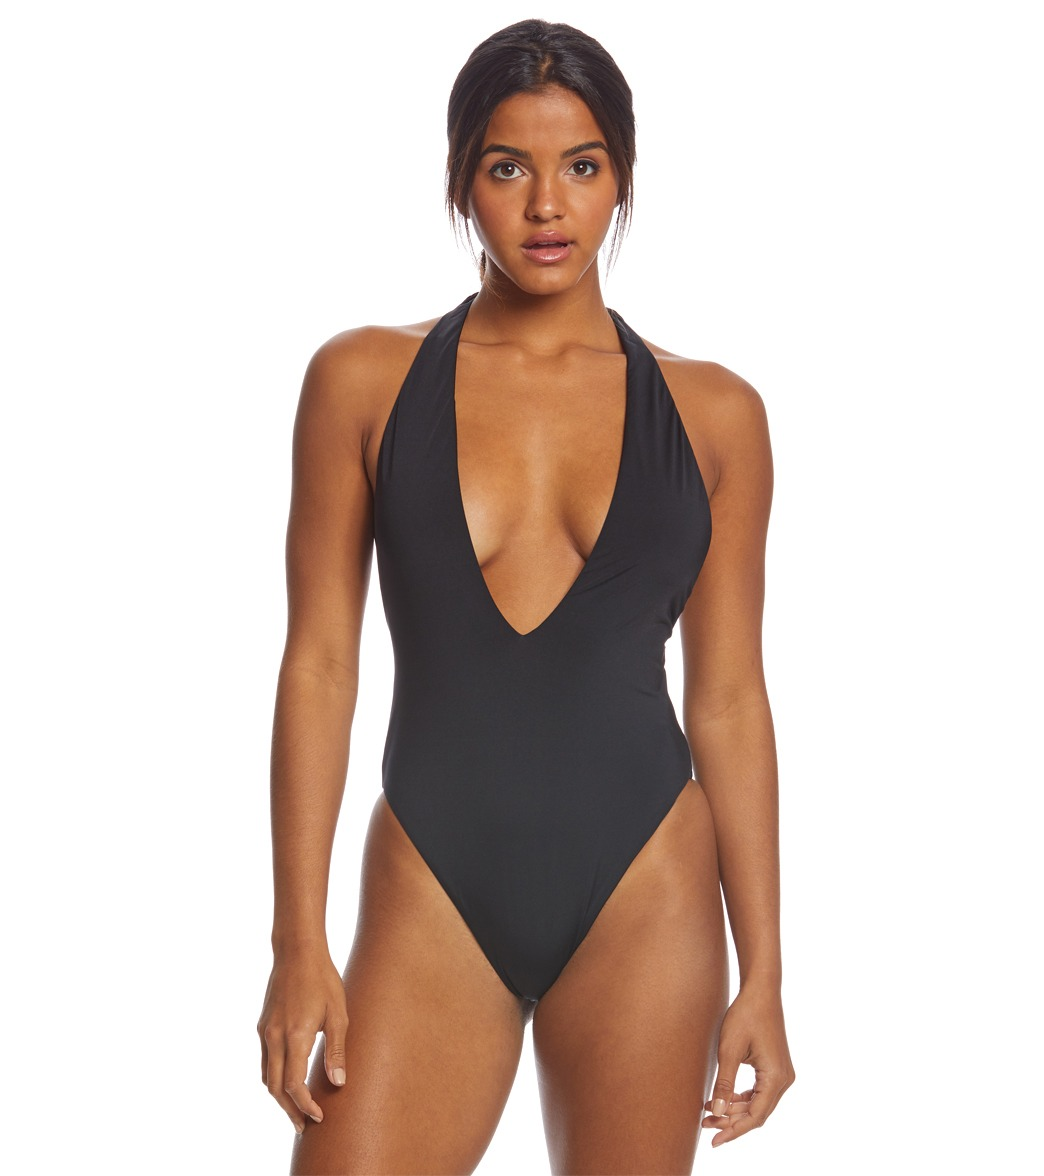 0616f36c552 Bikini Lab Solid Racerback One Piece Swimsuit at SwimOutlet.com - Free  Shipping